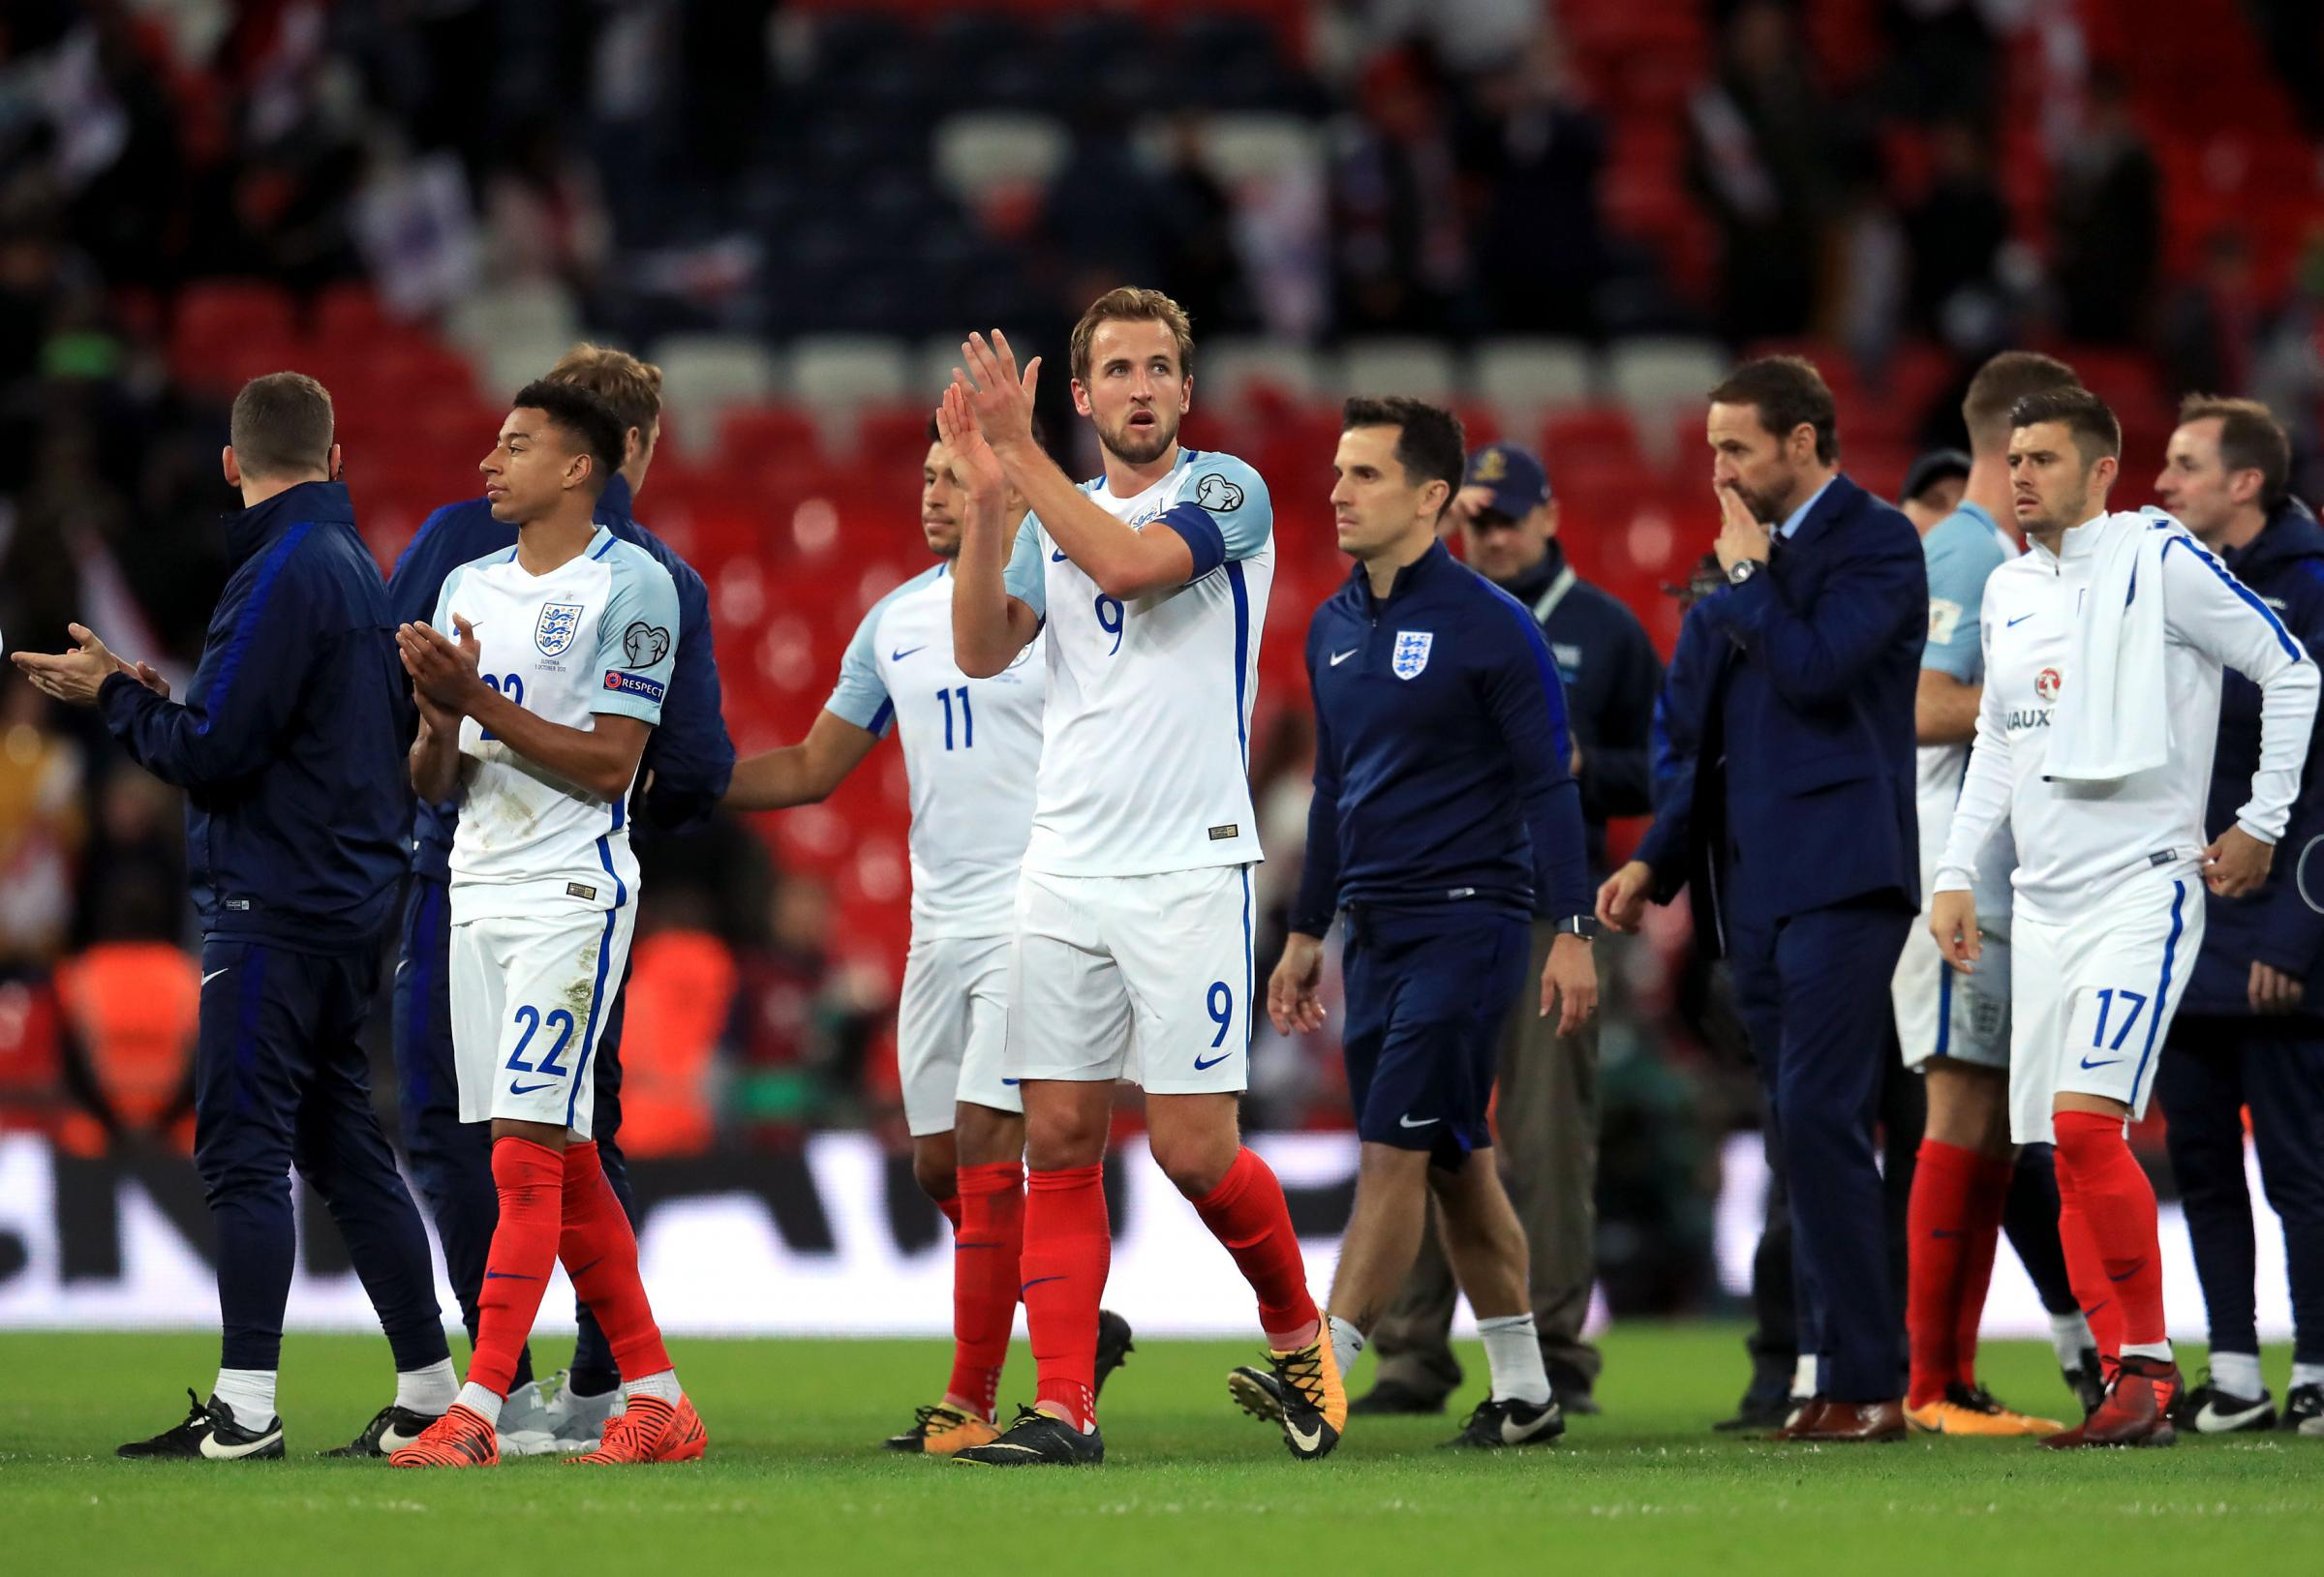 QUALIFIED: England players and staff applaud the fans after qualifying. Picture: Adam Davy/PA Wire.